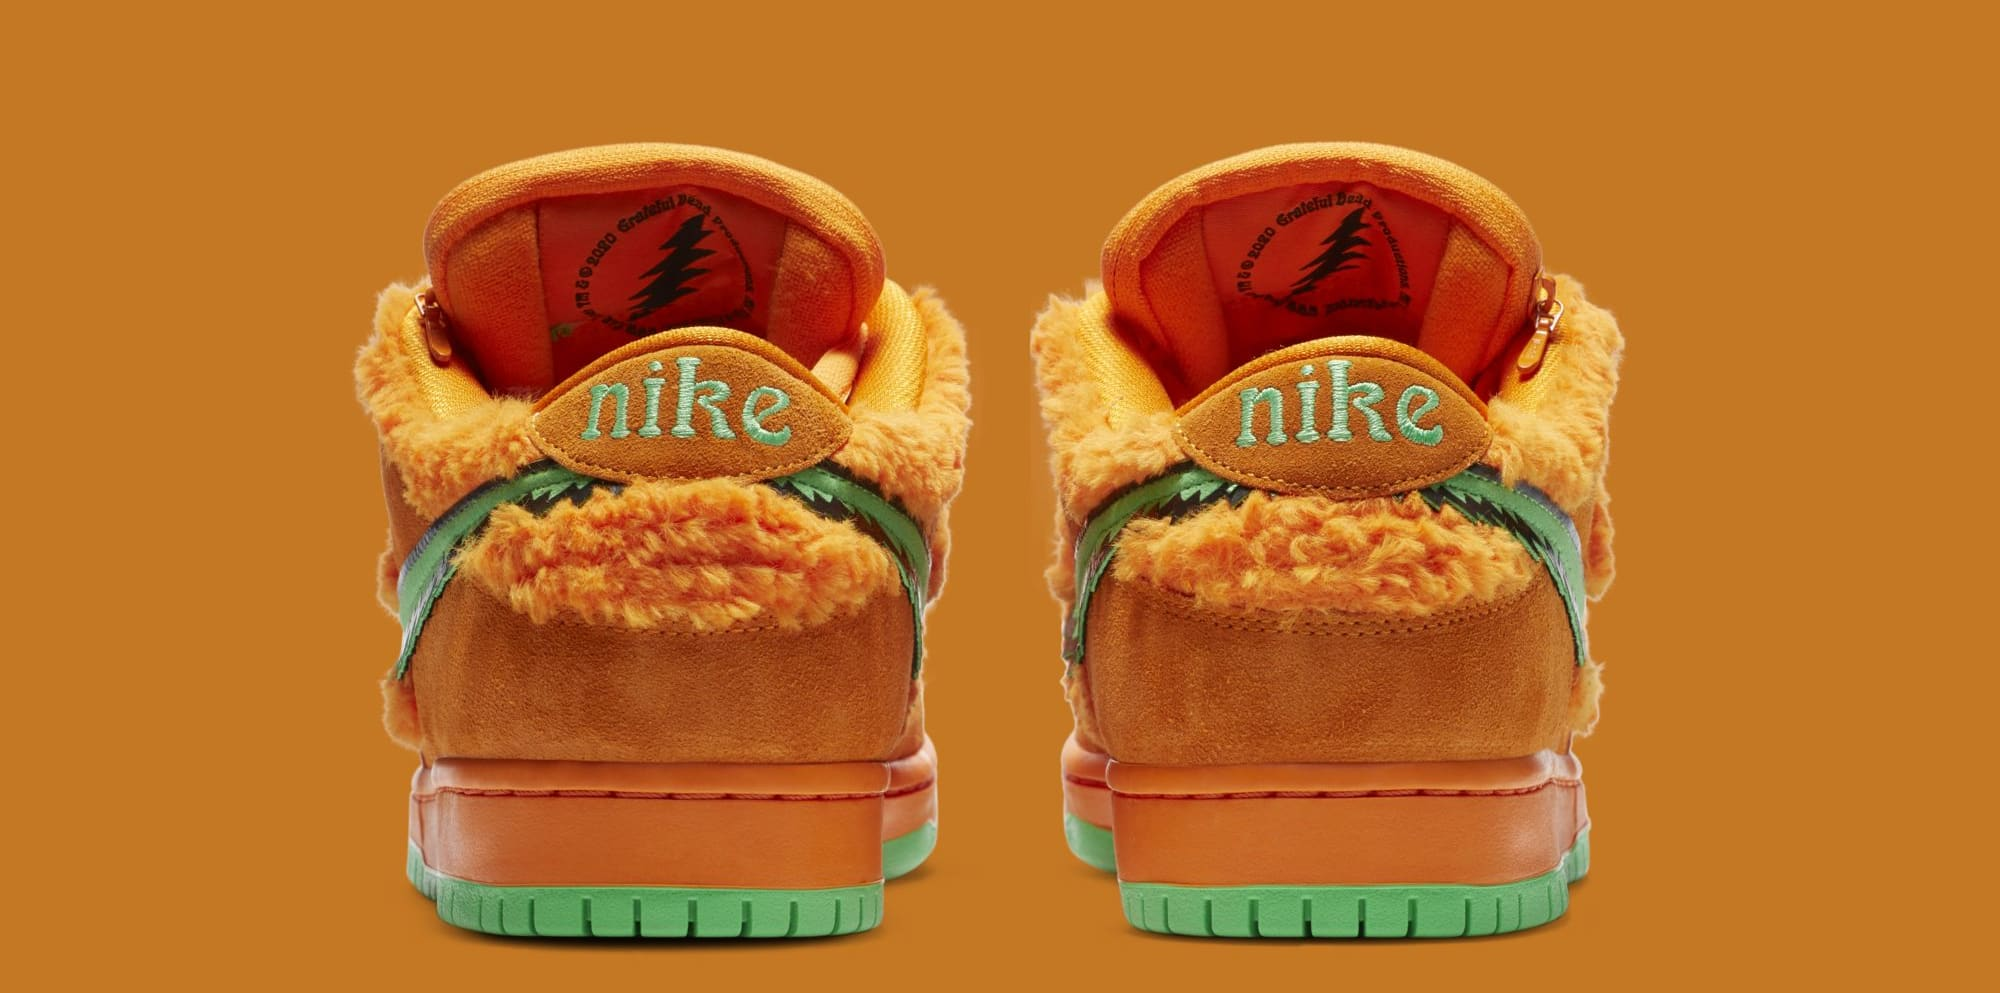 Grateful Dead x Nike SB Dunk Low 'Orange' CJ5378-800 (Heel)